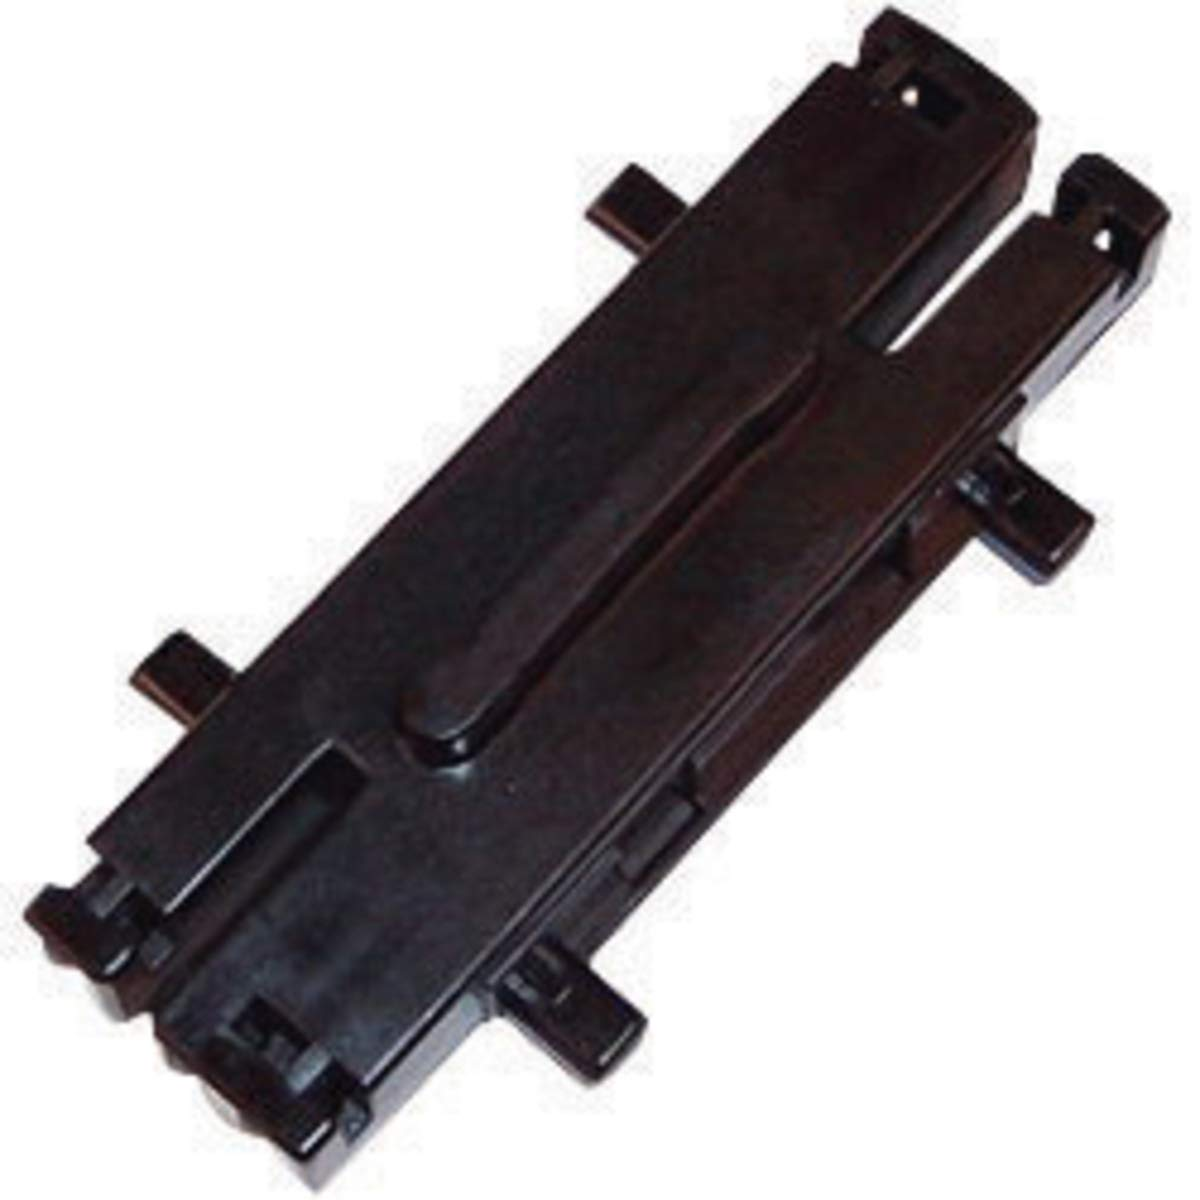 Milwaukee Connector Block Assembly (For Use With Hammer, Rotary Hammer And Impact Wrench), Package Size: 1 Each